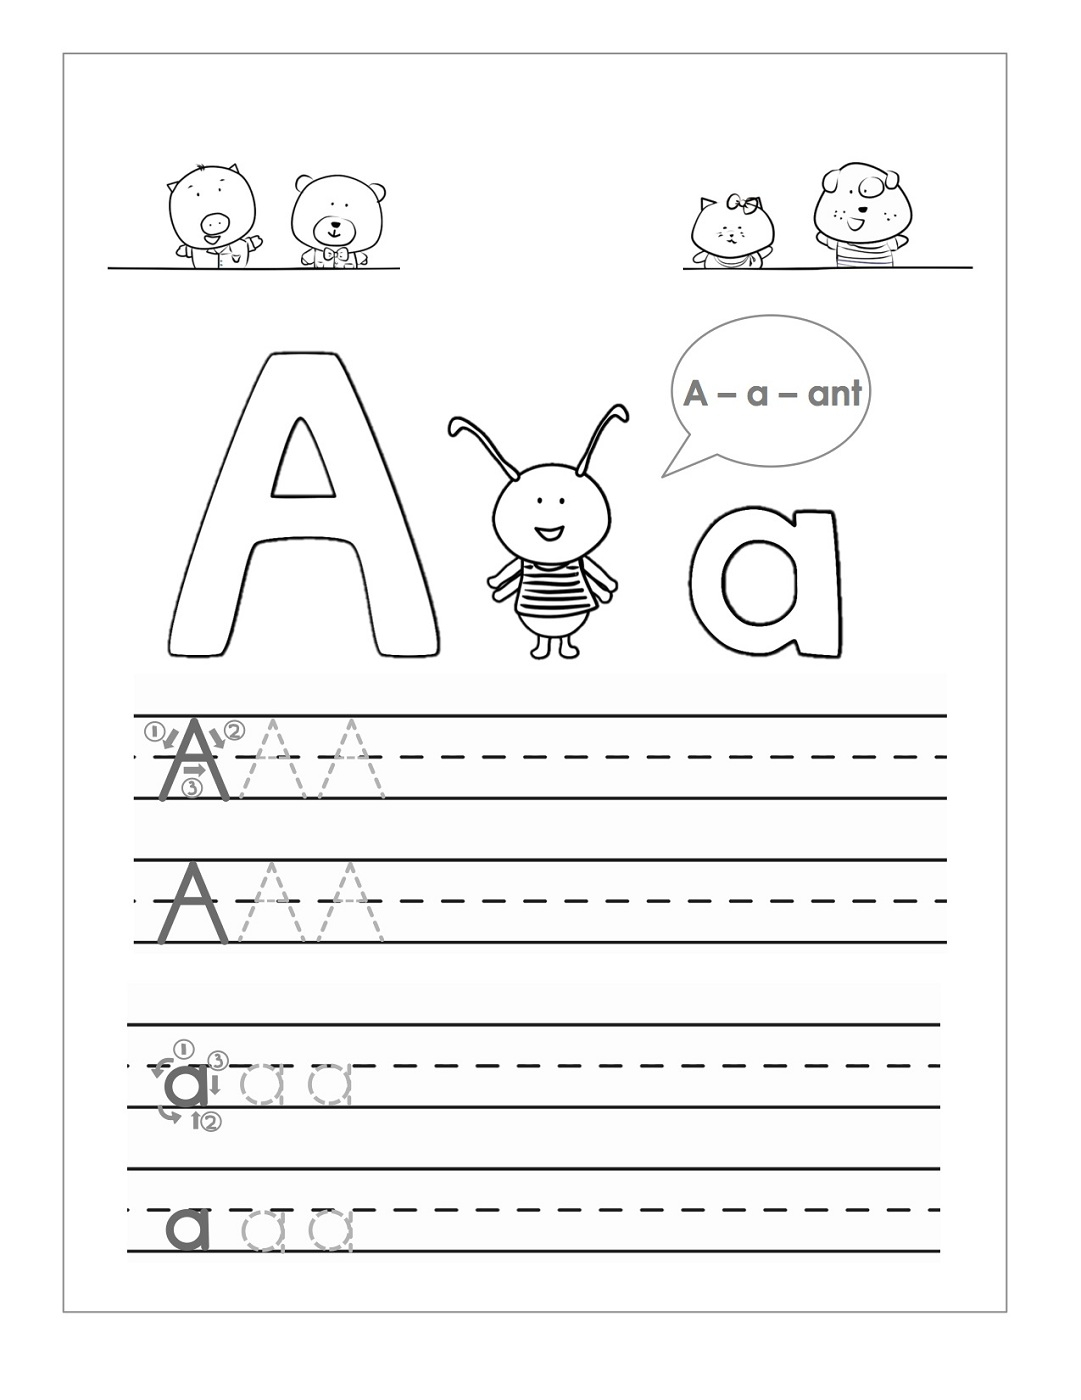 Tracing The Letter A Free Printable Activity Shelter